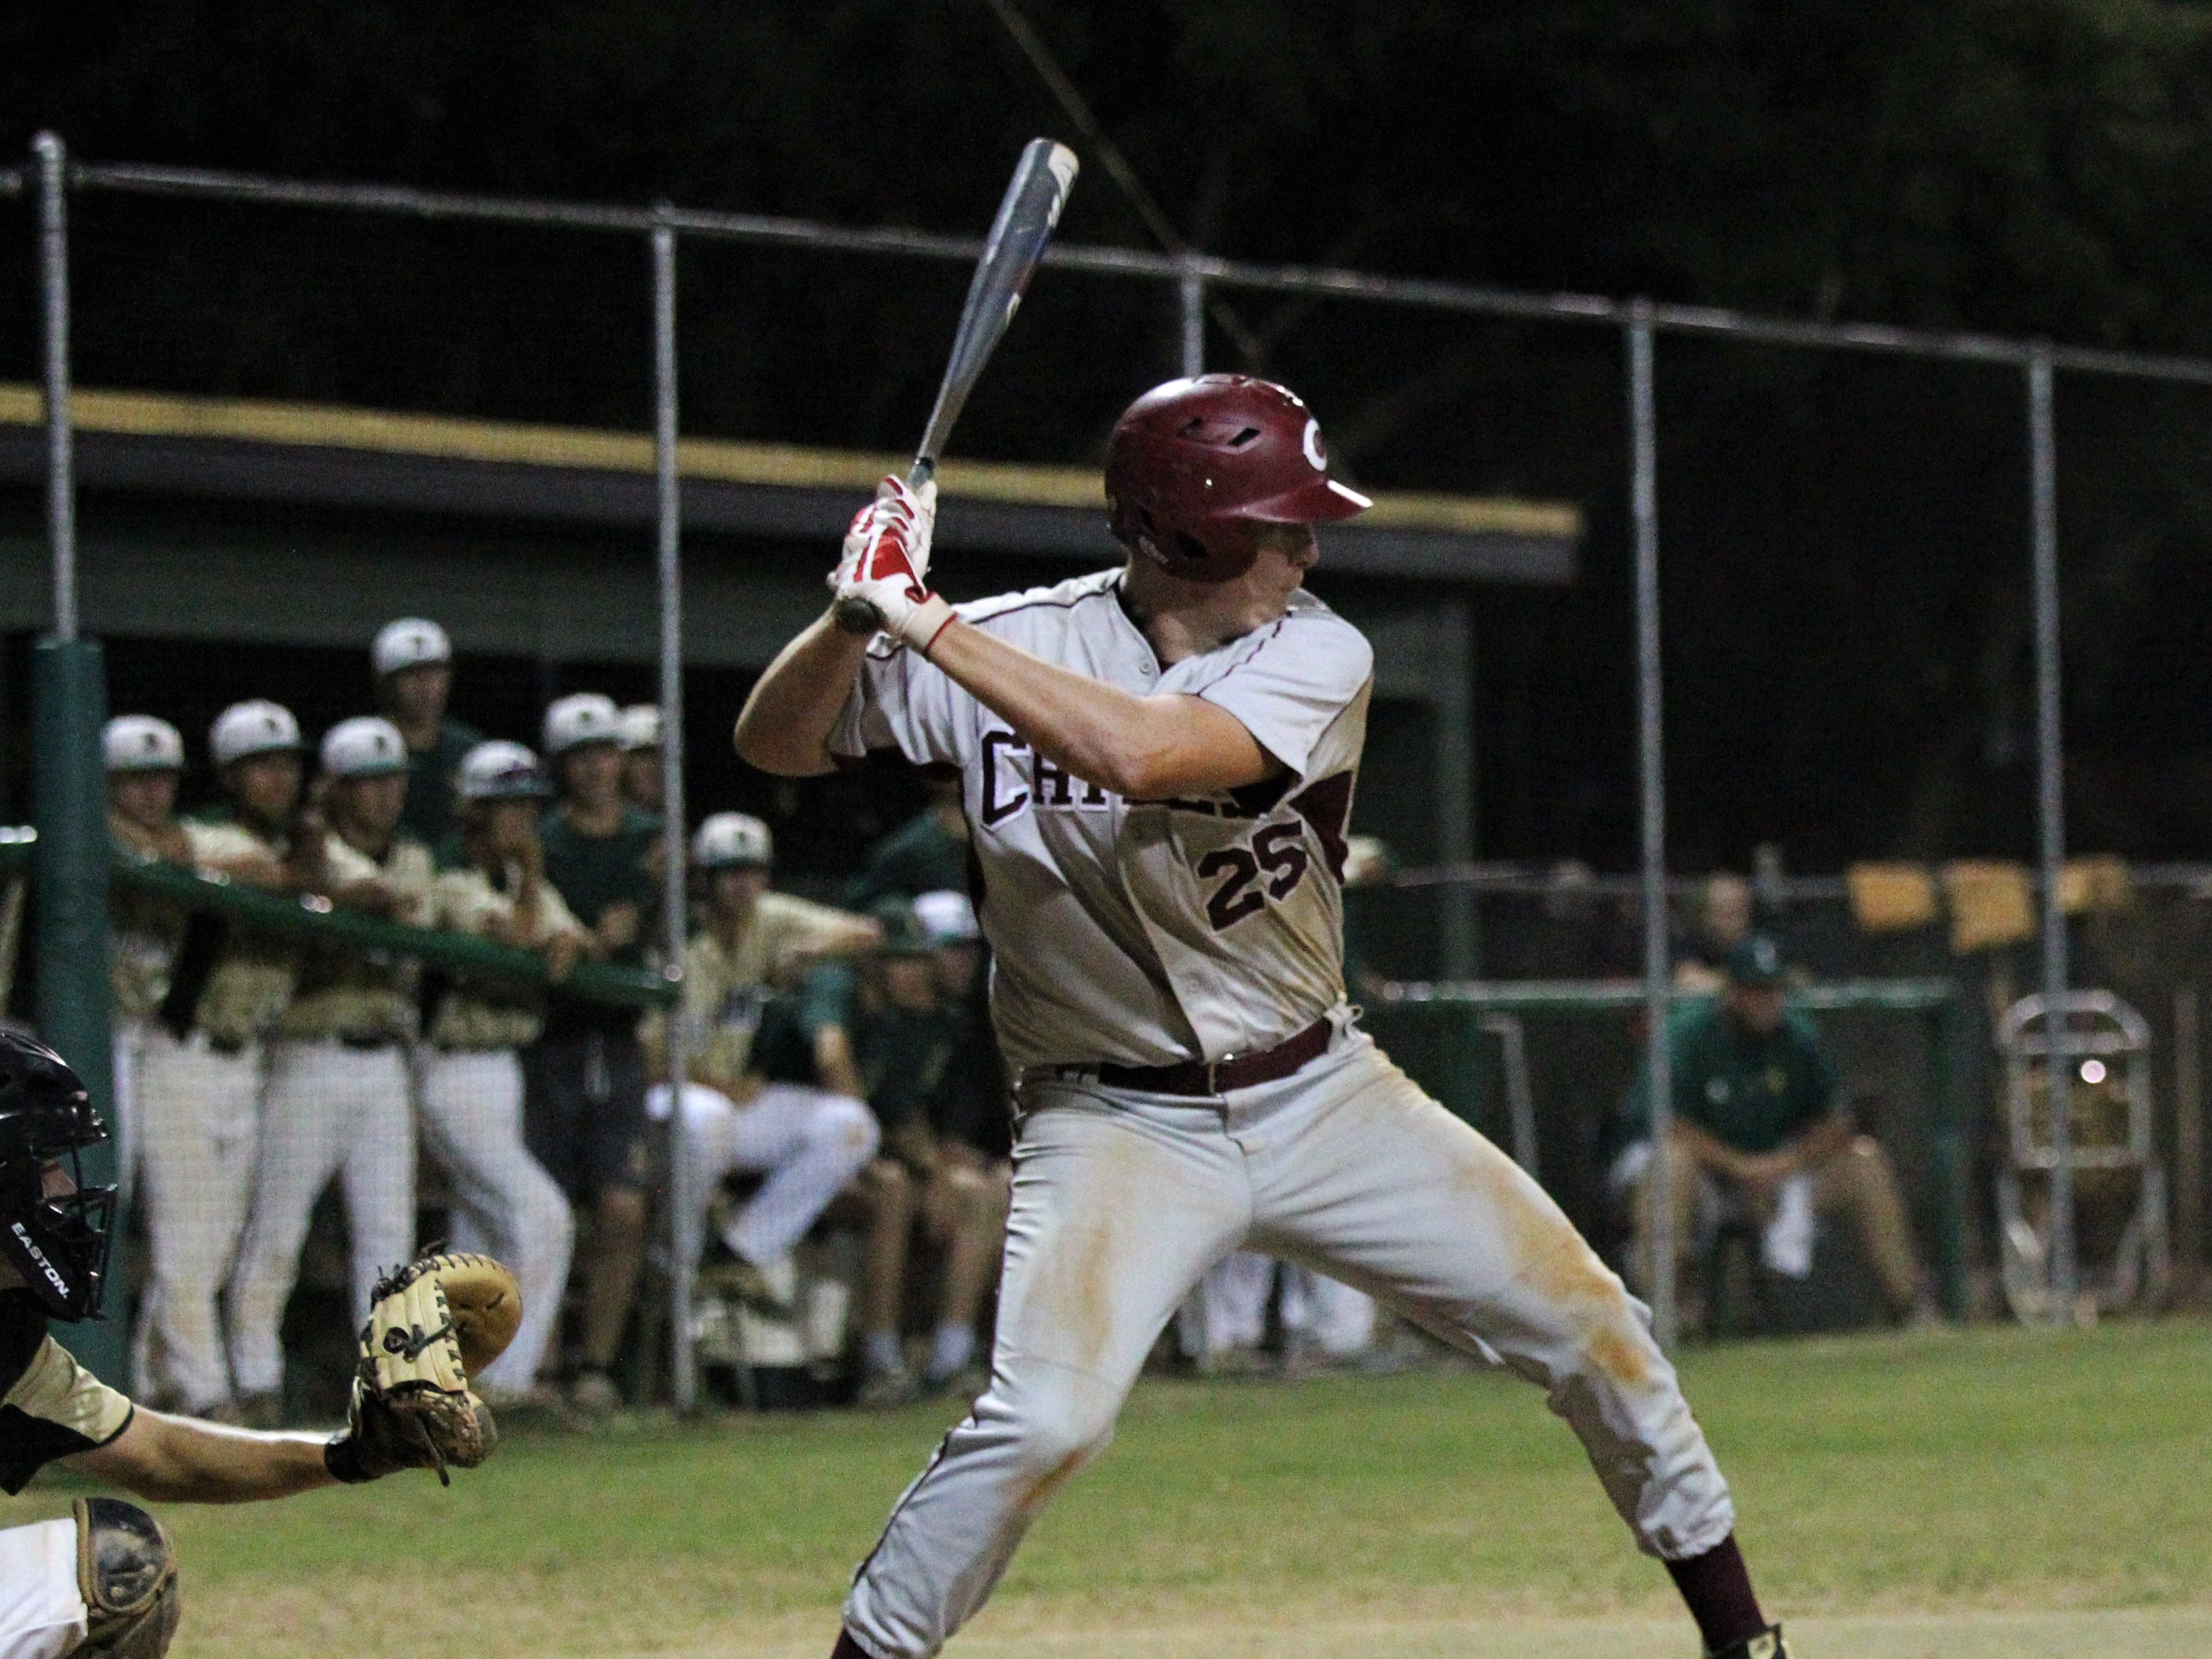 Chiles junior Wyatt Dodd bats as Lincoln baseball beat Chiles 5-4  in 10 innings during a District 2-8A championship game on Thursday, May 9, 2019.